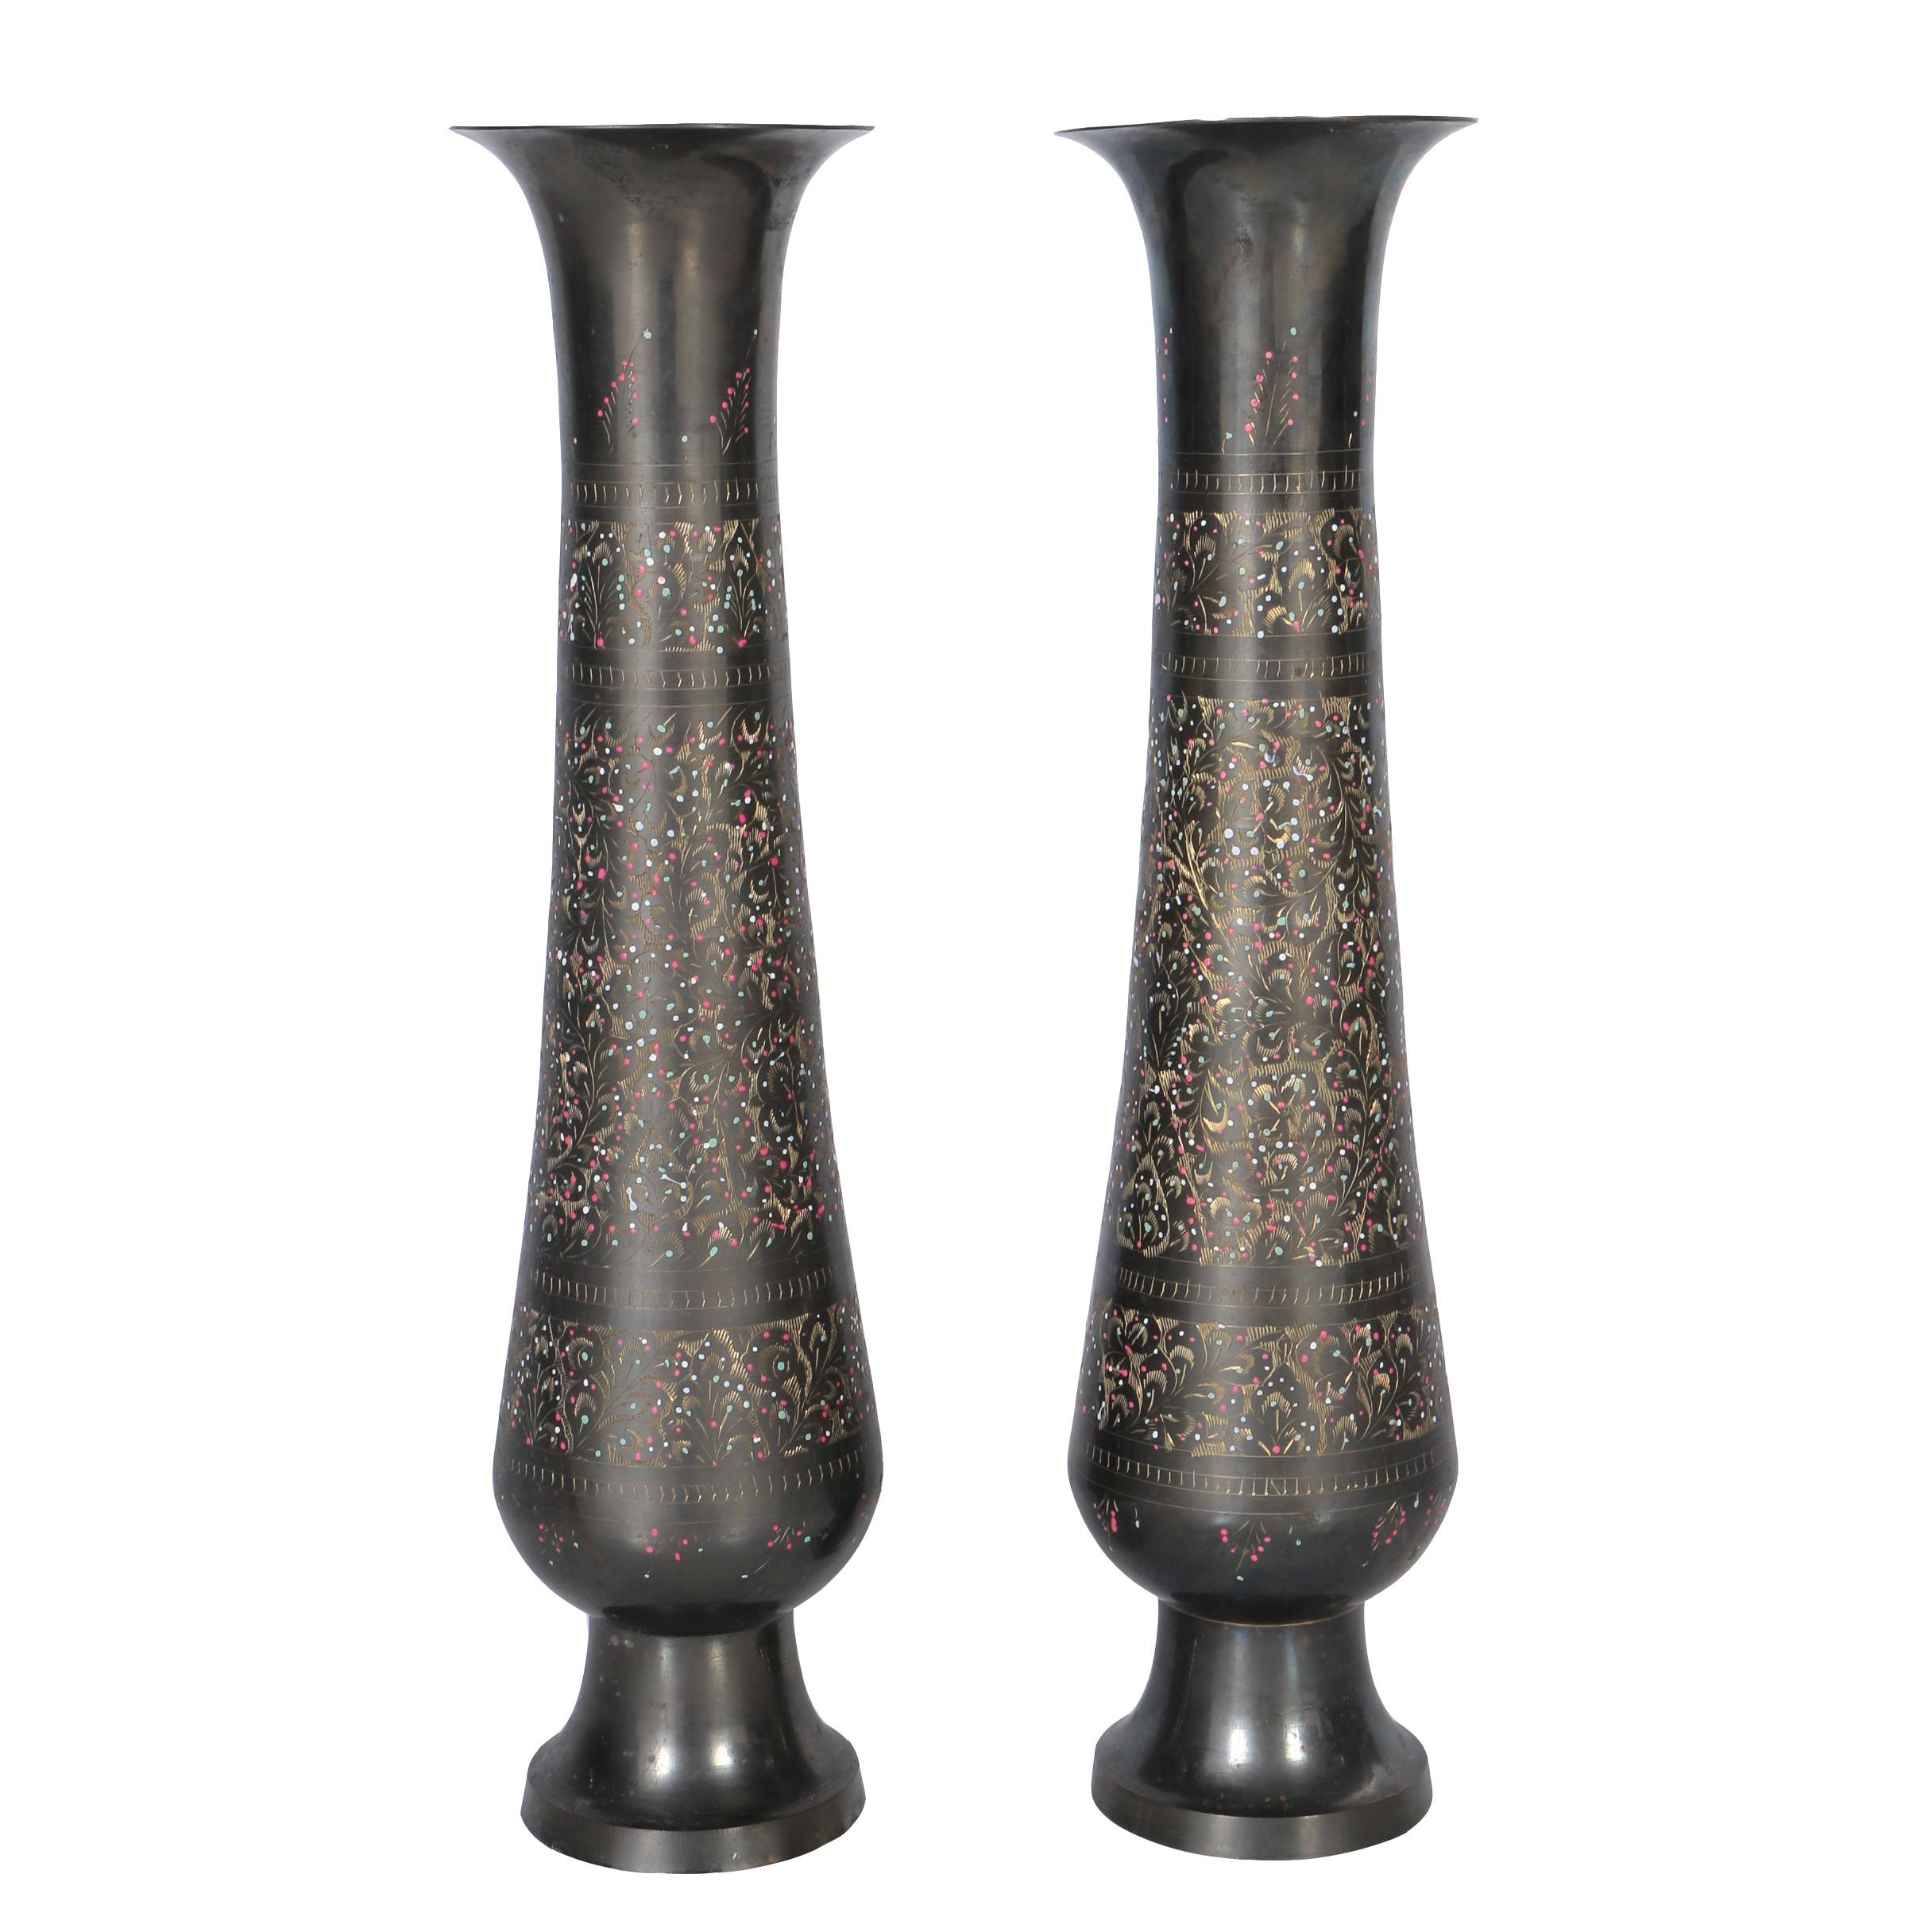 Pair of Etched Brass Vases